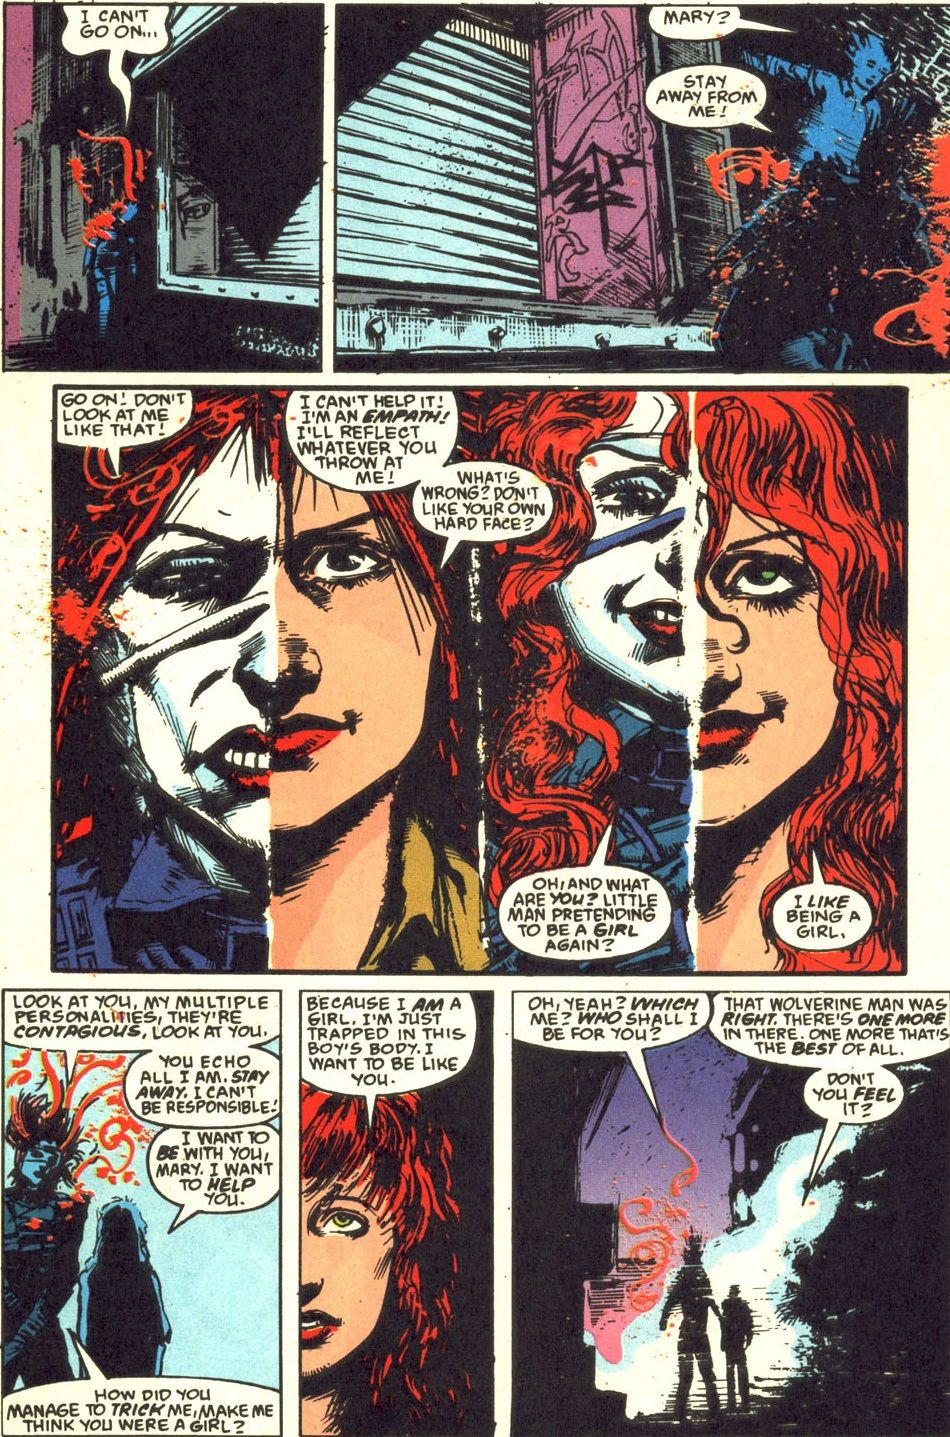 Jessie and Typhoid Mary